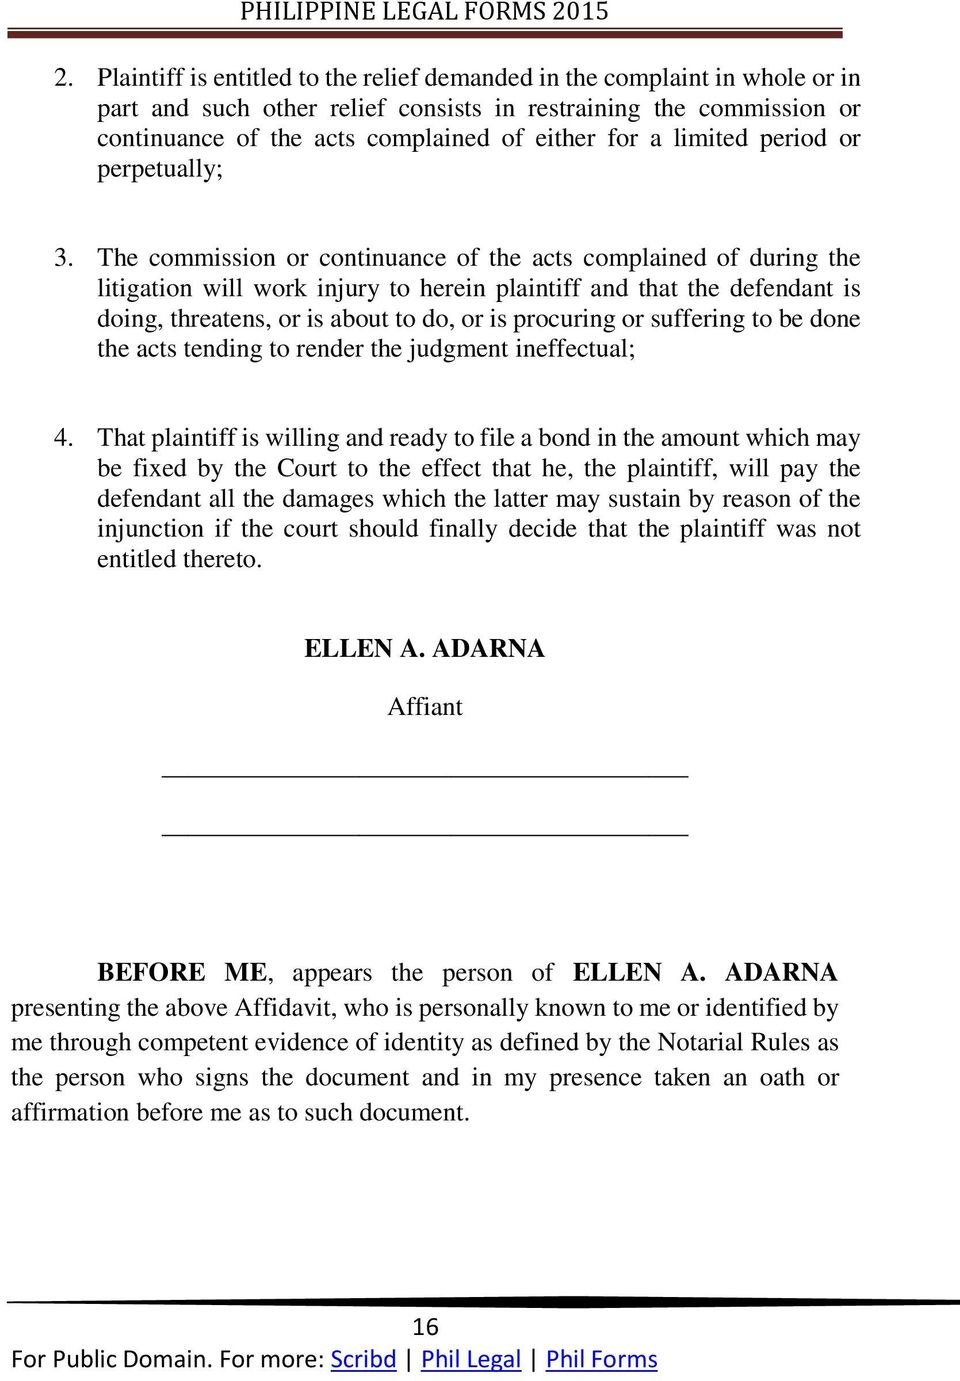 rules of court evidence philippines pdf